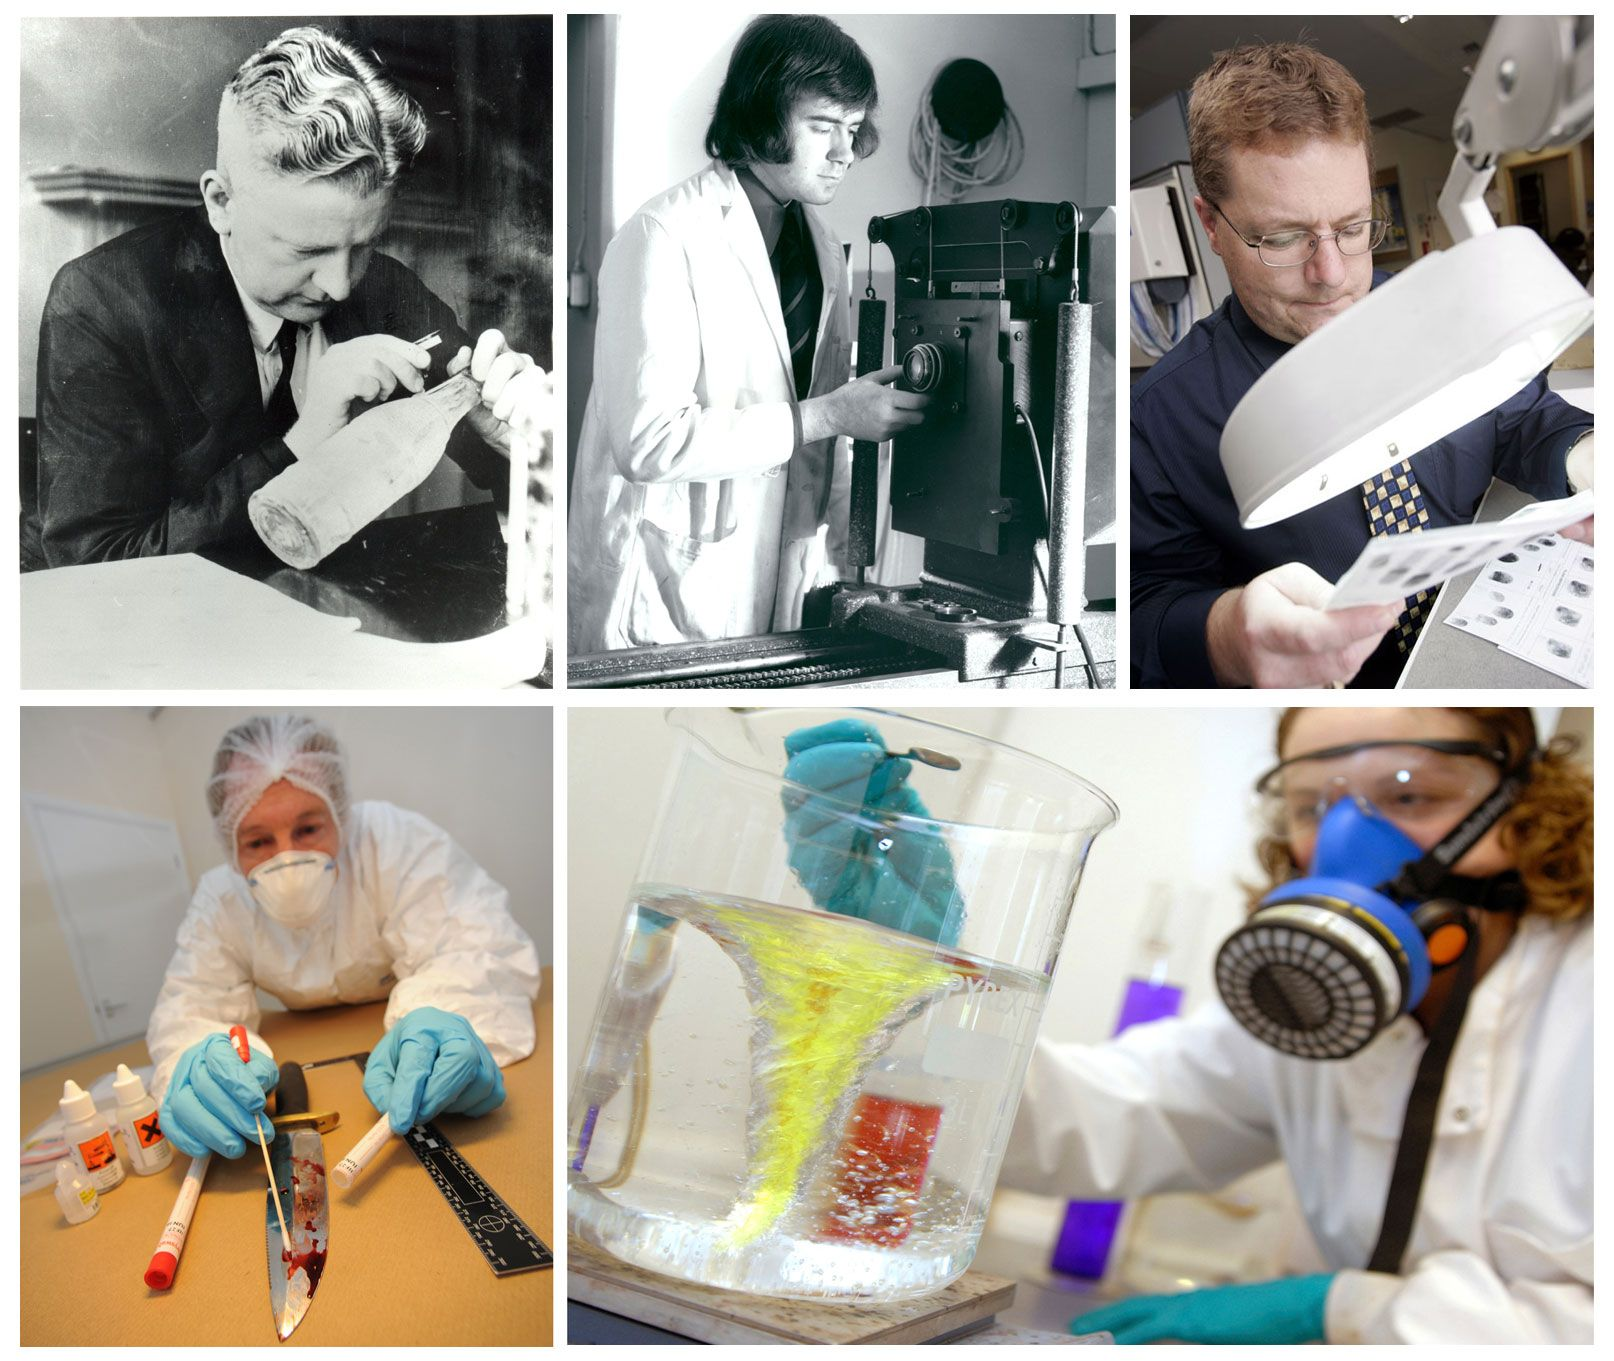 Forensics is a key part of solving crime and it's fair to say that science has developed significantly over the years. Our staff have the skills and equipment needed to examine evidence in relation to crime in Surrey.